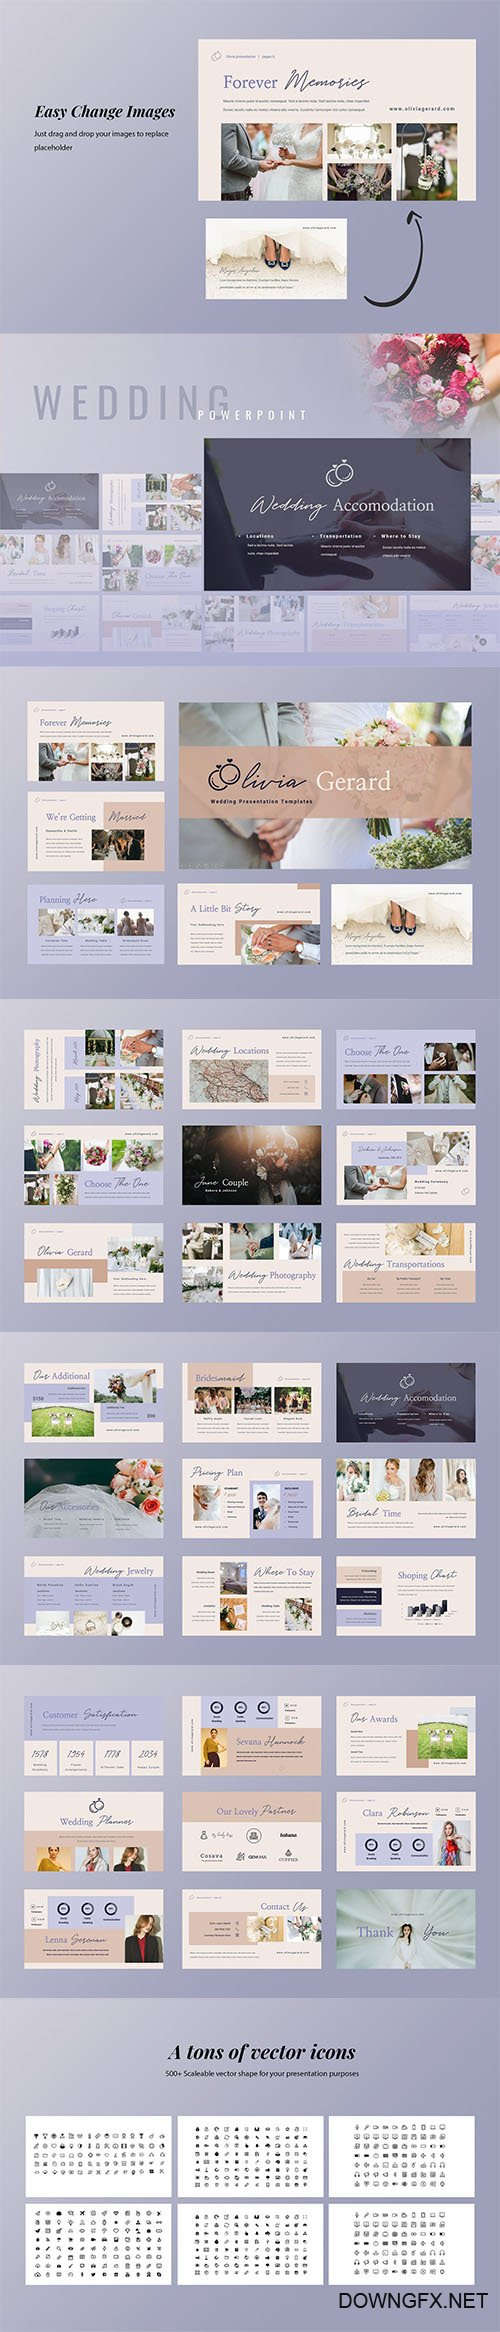 Olivia - Wedding Planner Powerpoint Google Slides and Keynote Templates